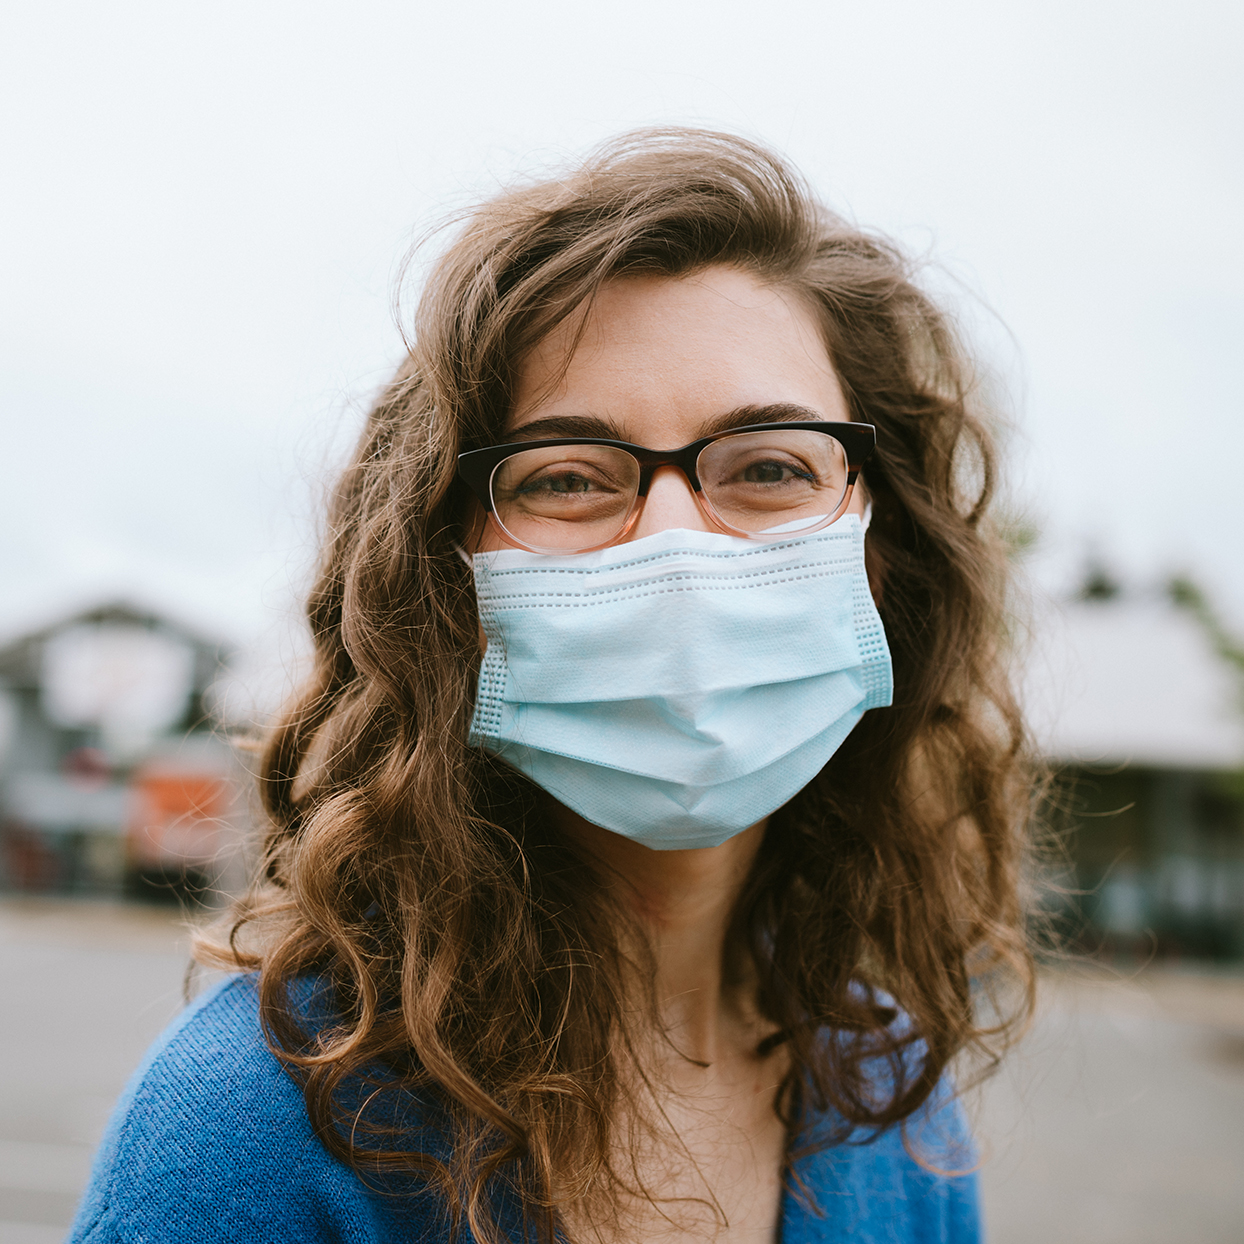 Woman wearing glasses and mask